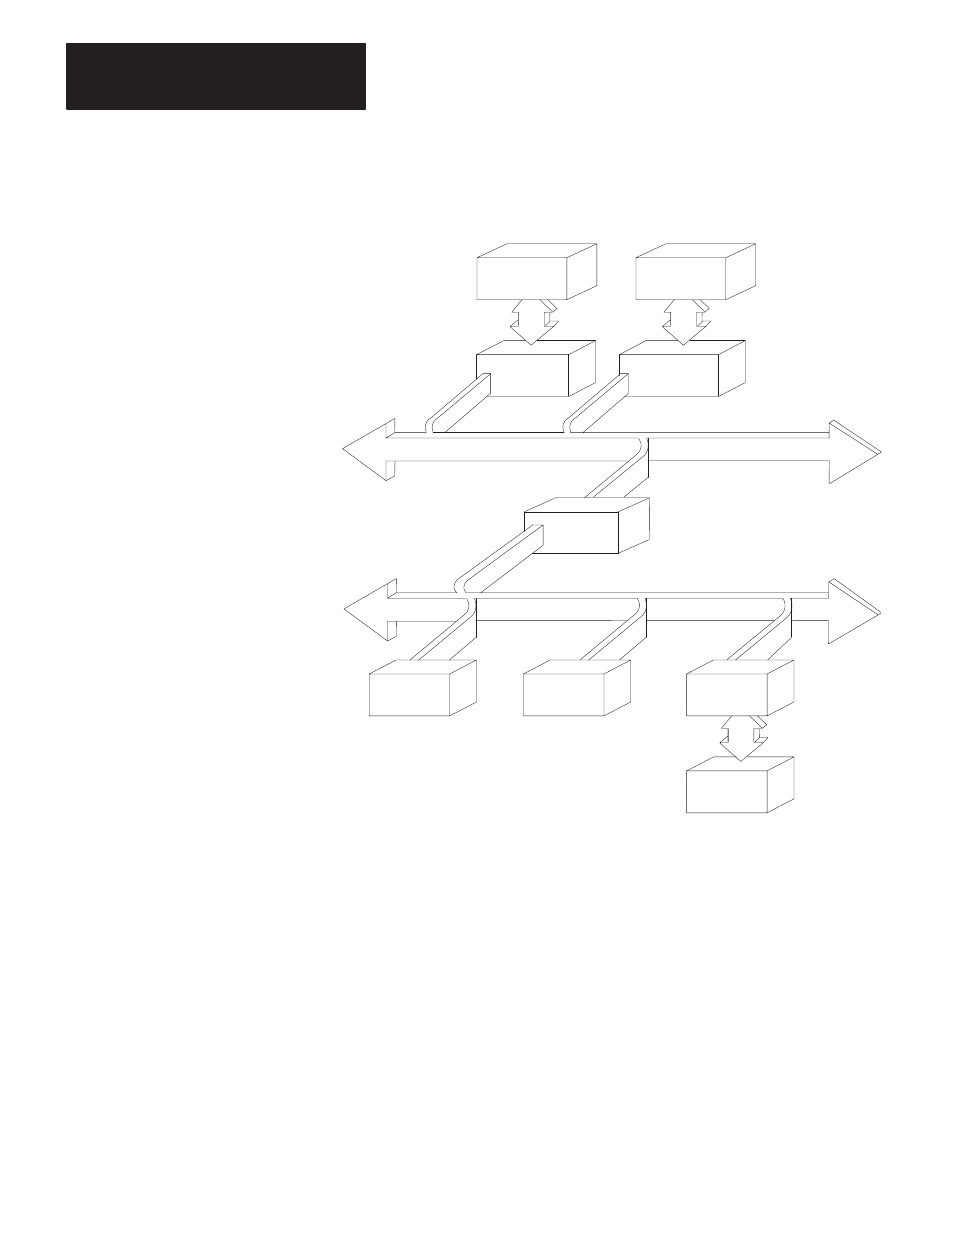 Rockwell Automation 1770-KF2 Data Highway or Highway Plus Interface Module  User Manual User Manual | Page 12 / 235